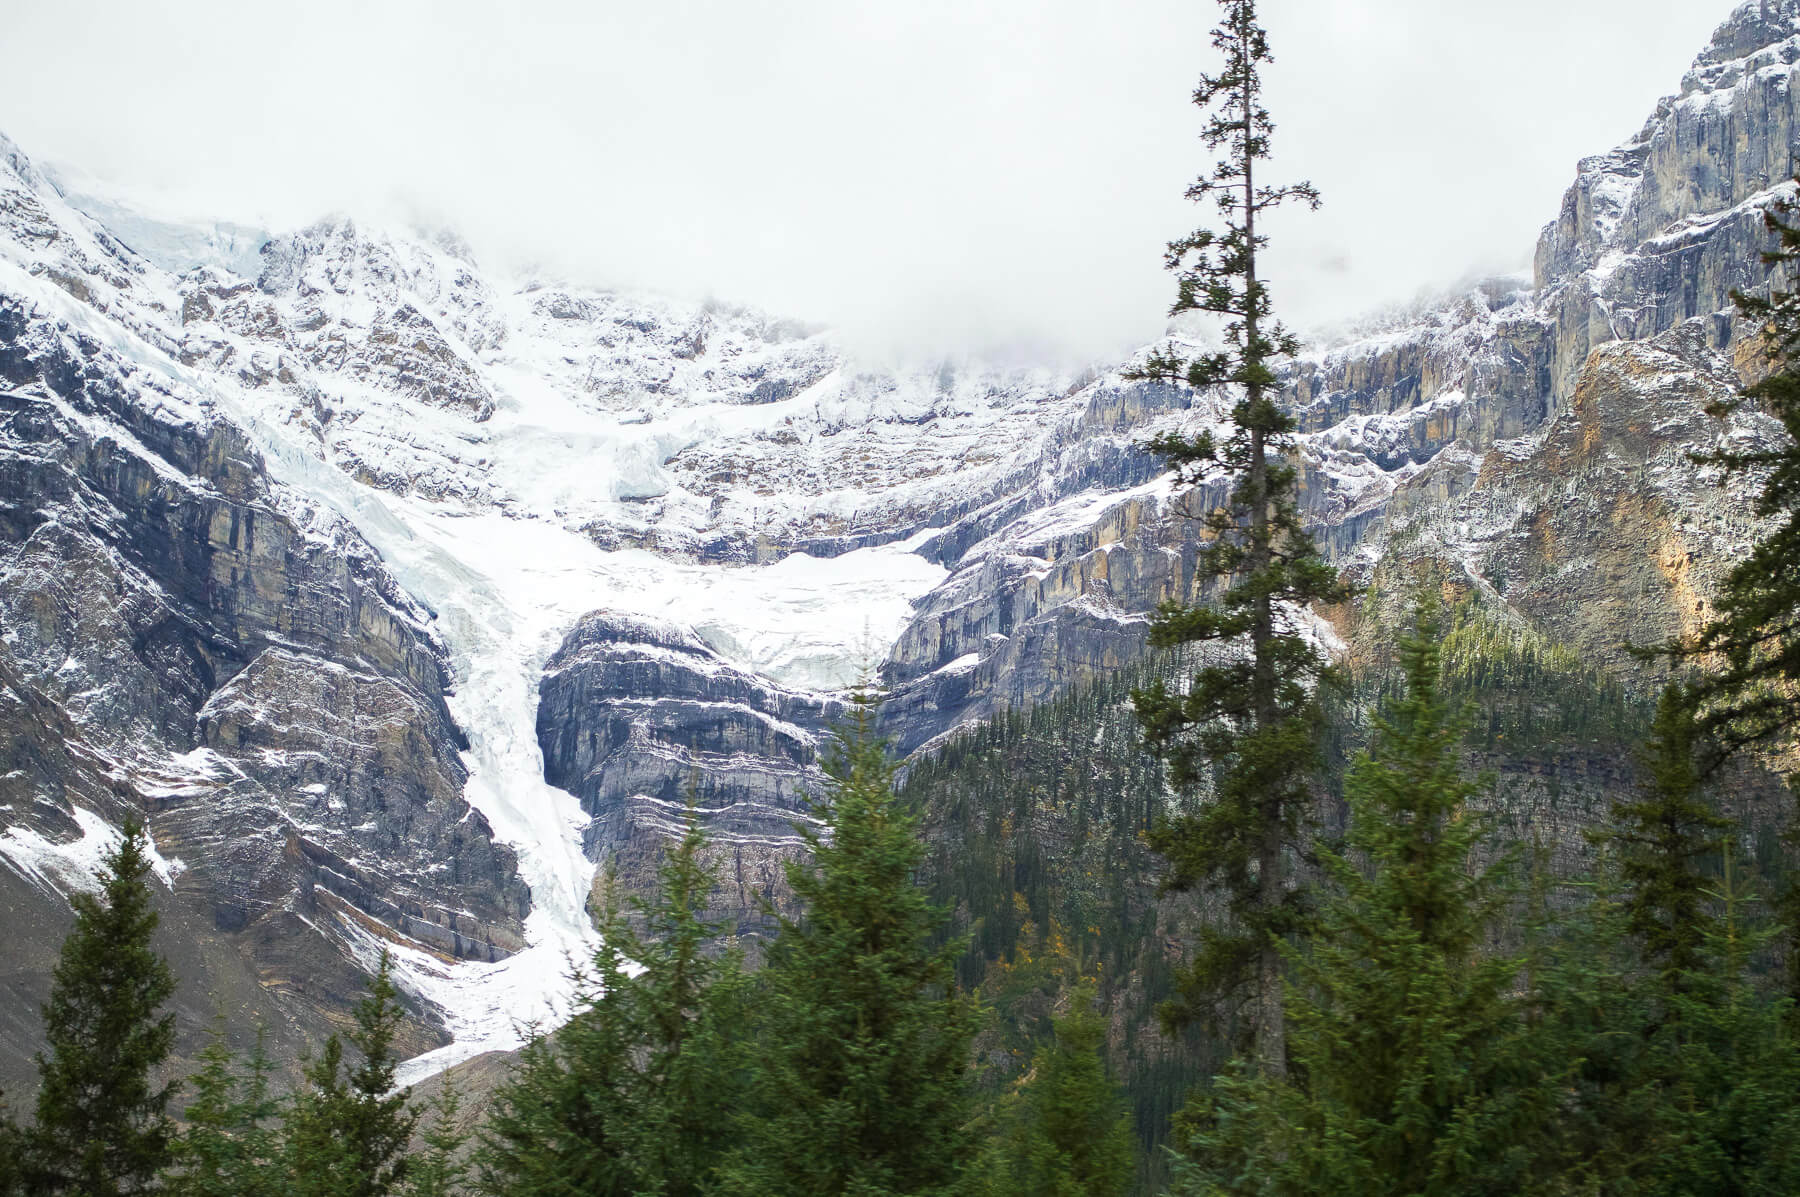 A glacier running down a mountain behind a pine tree